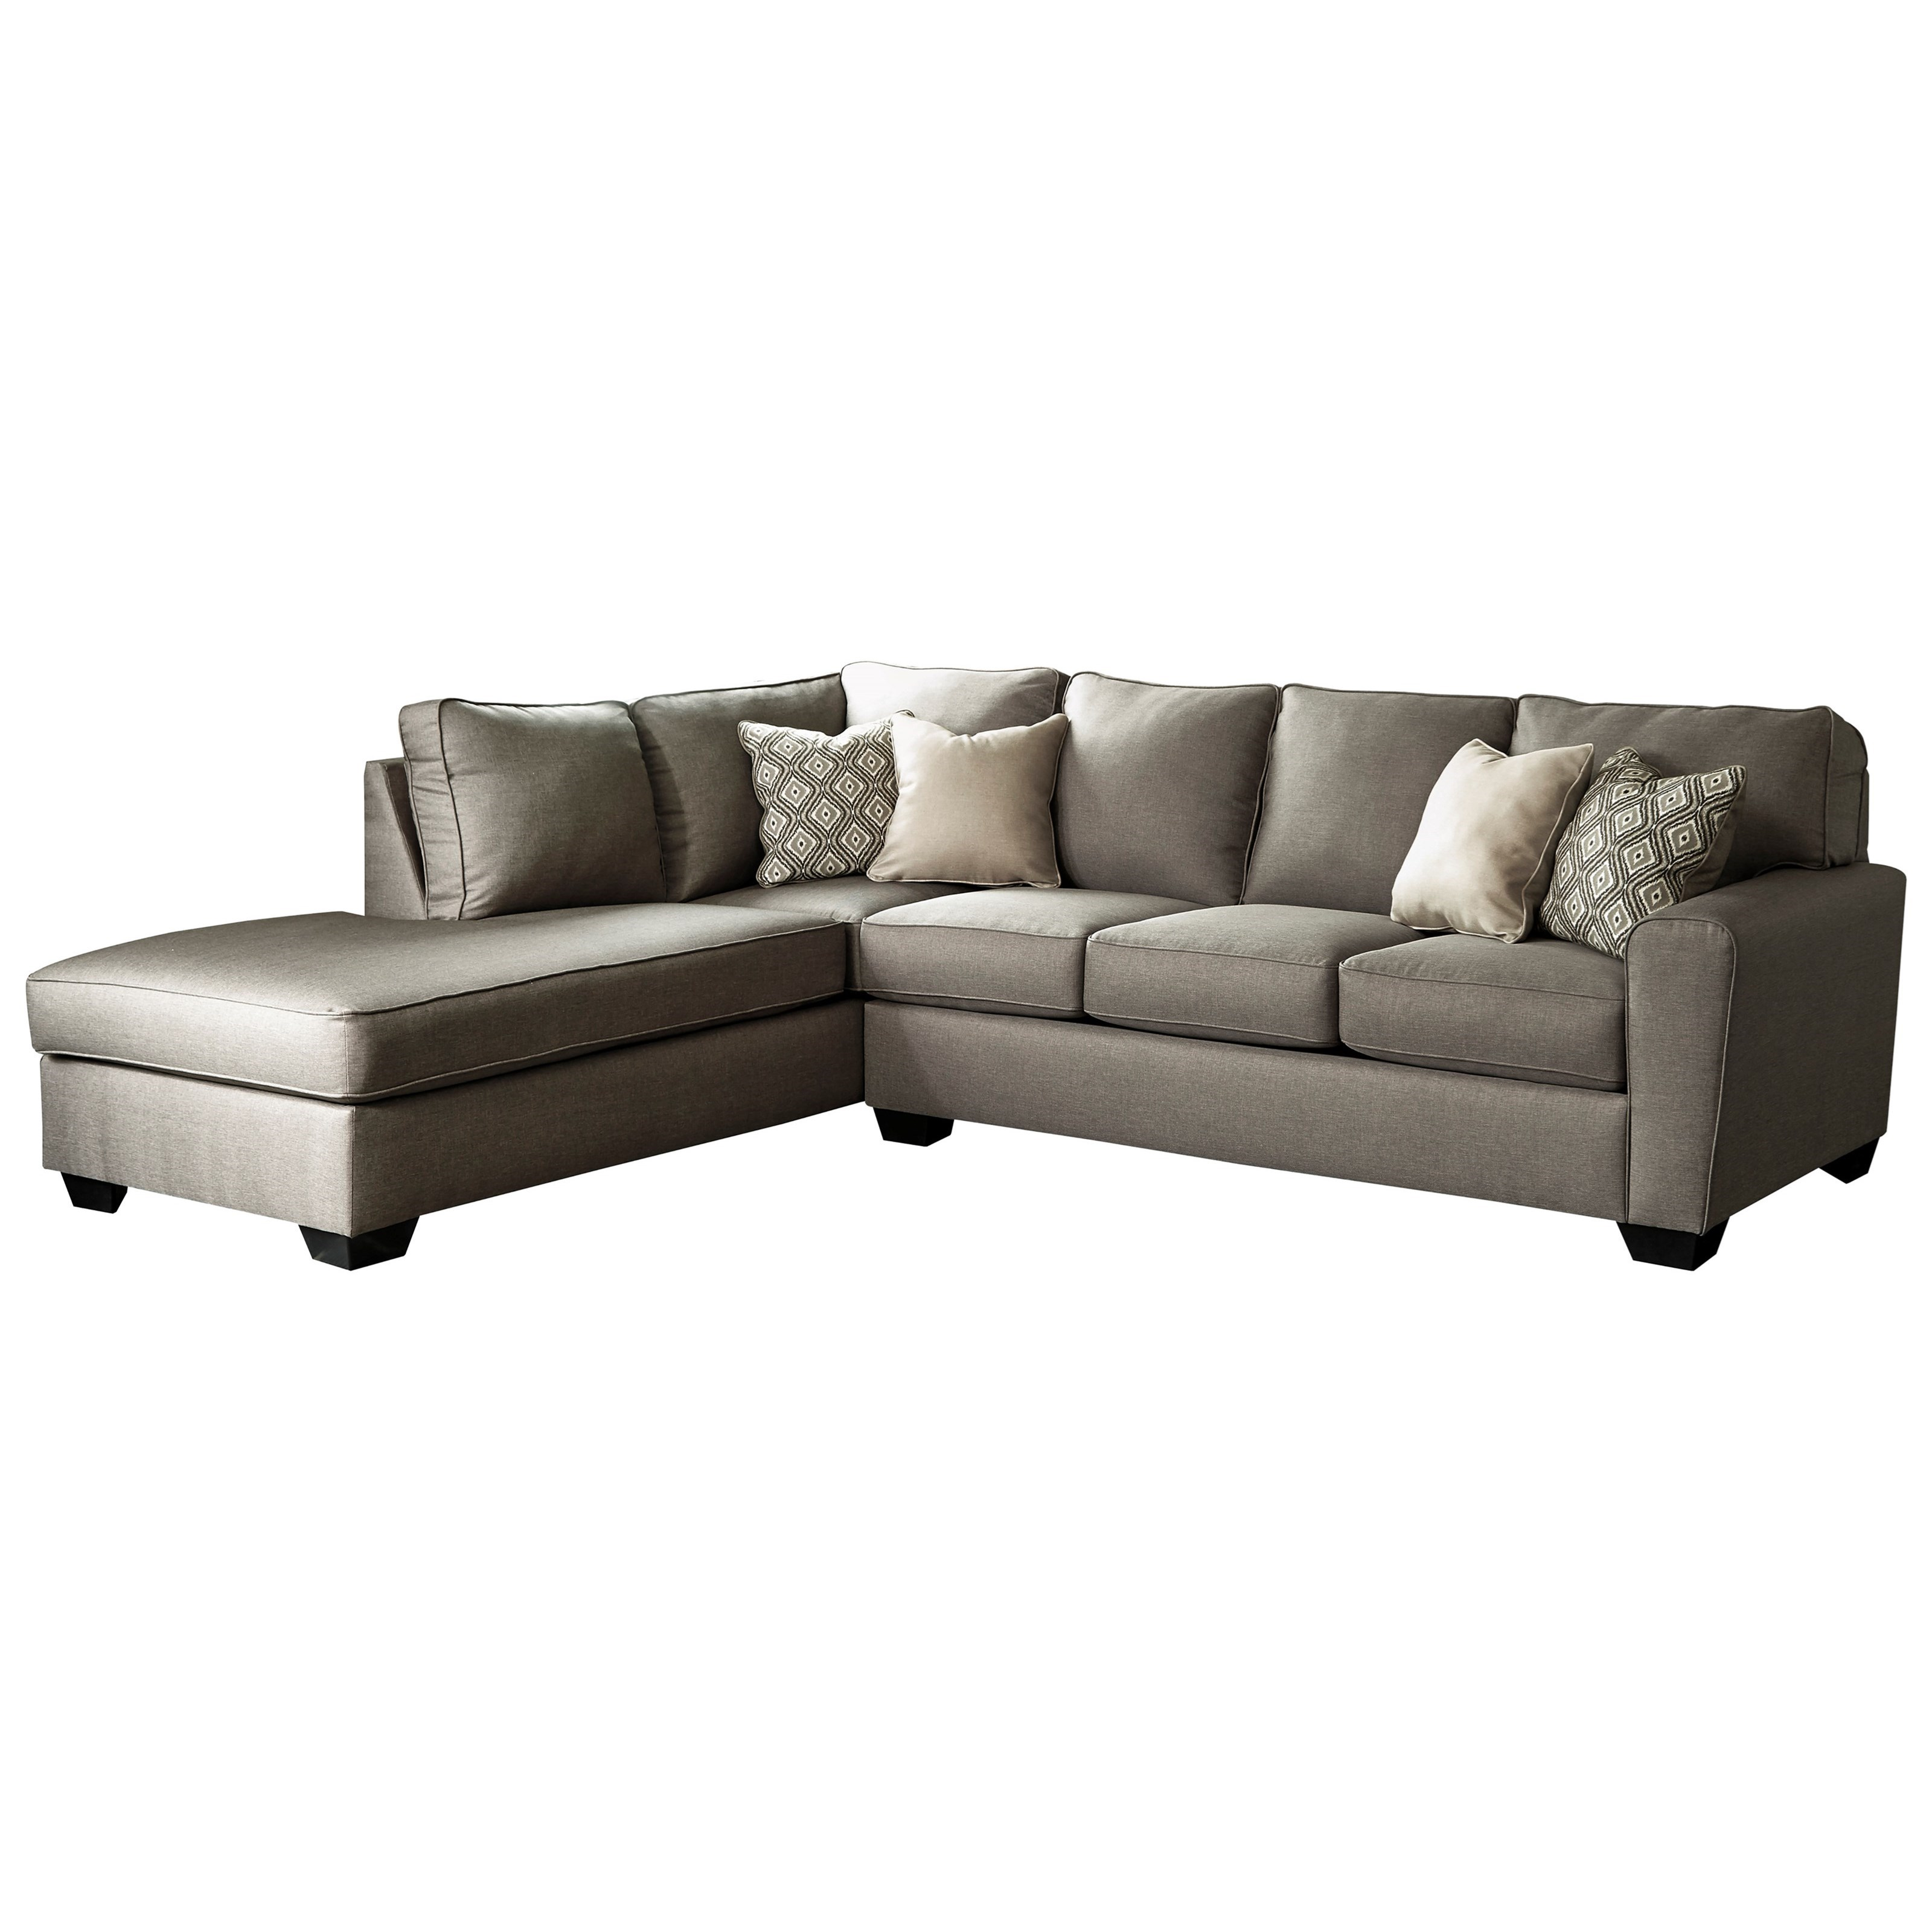 benchcraft calicho contemporary sectional with left chaise del sol furniture sectional sofas. Black Bedroom Furniture Sets. Home Design Ideas